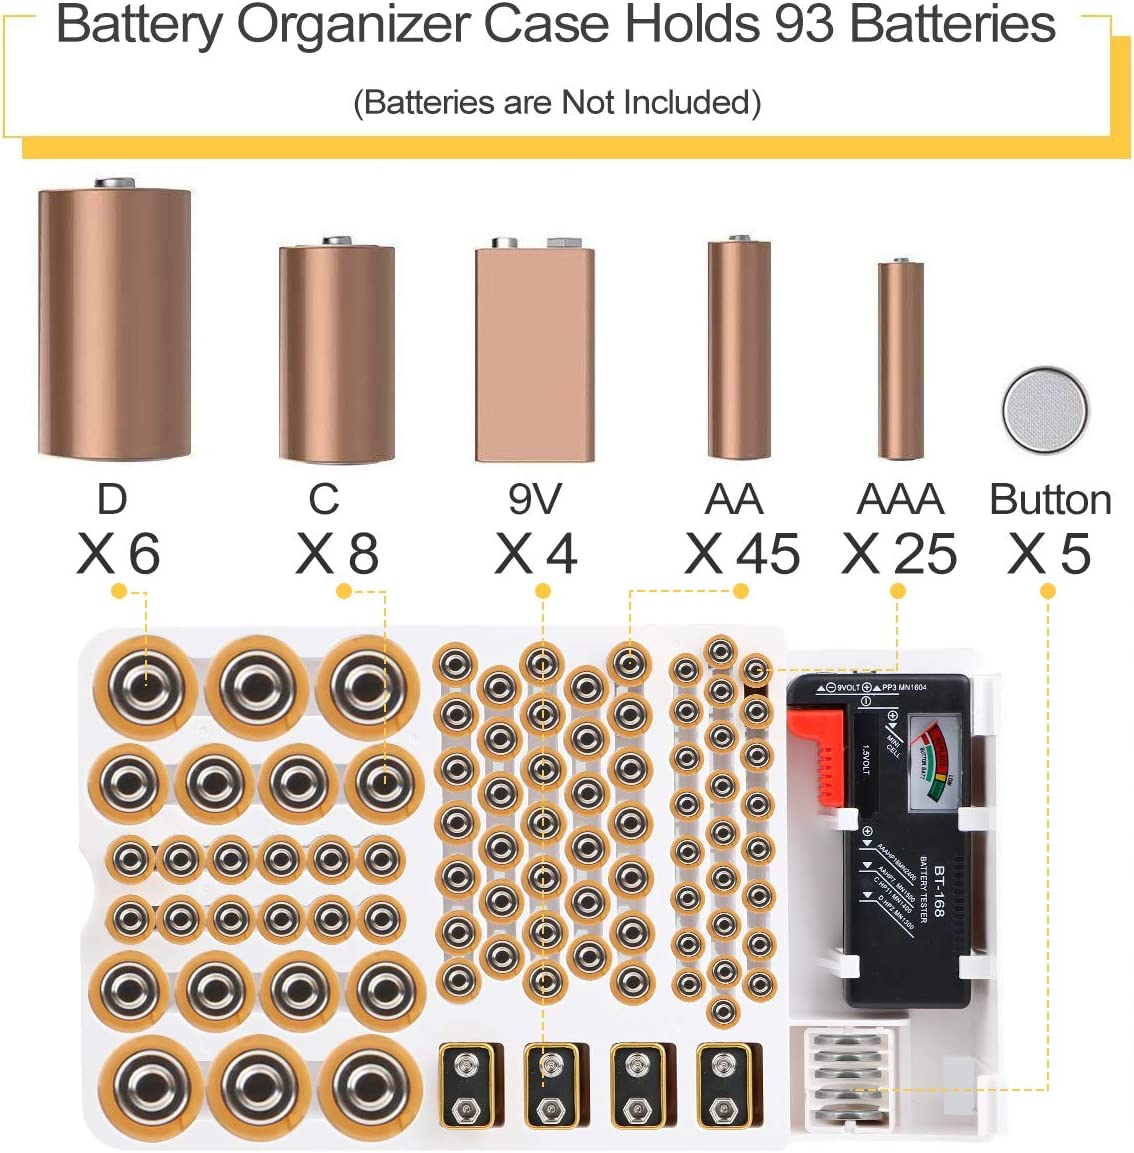 Battery Organizer Flat Batteries,C and D size with Removable Battery Tester By Makerfire 9V AA Batteries Storage Case holds 93 Different Size Batteries for AAA